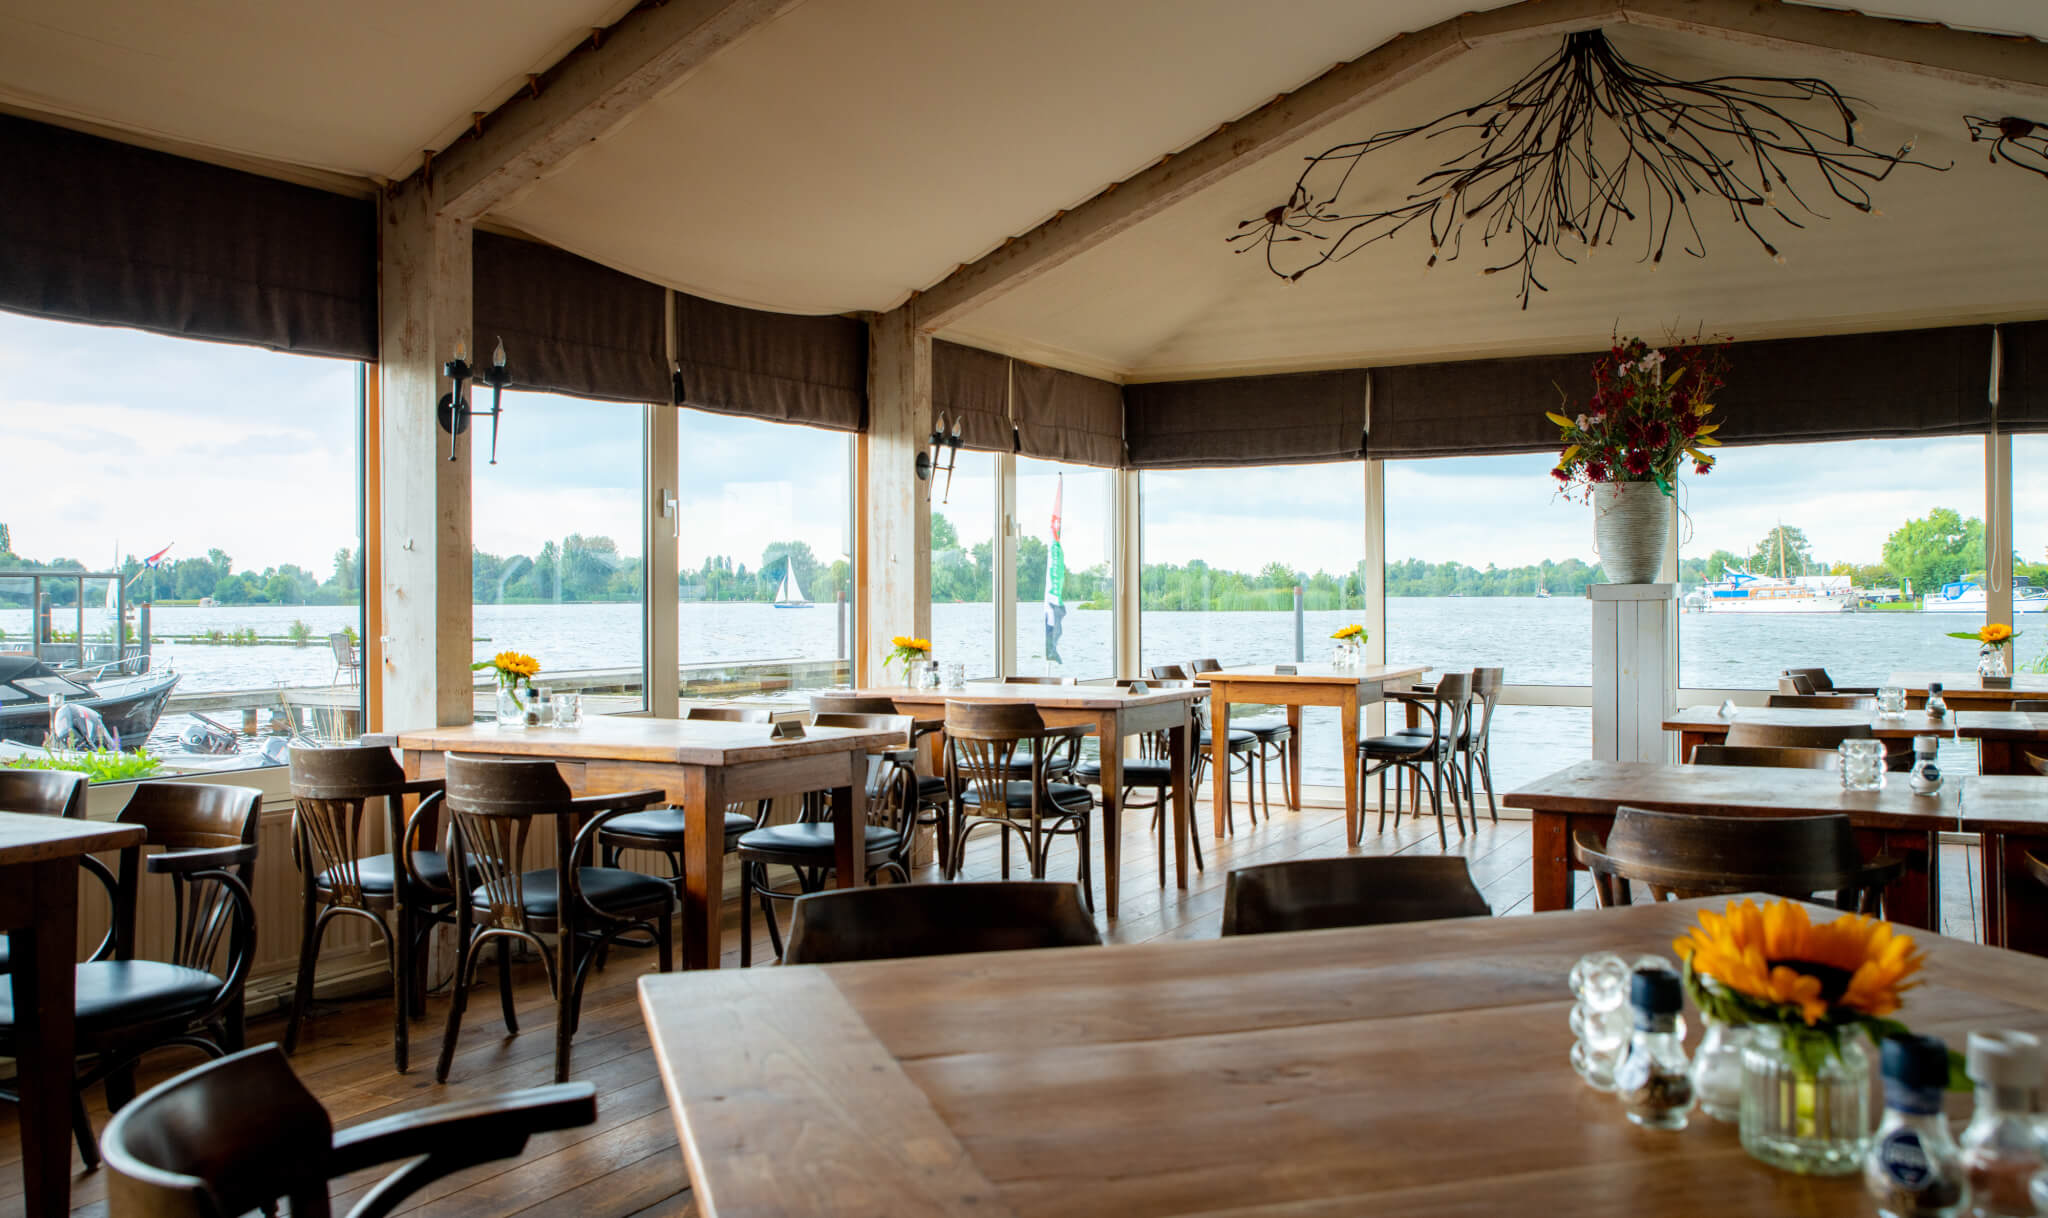 Restaurant in Aalsmeer: In de Zotte Wilg